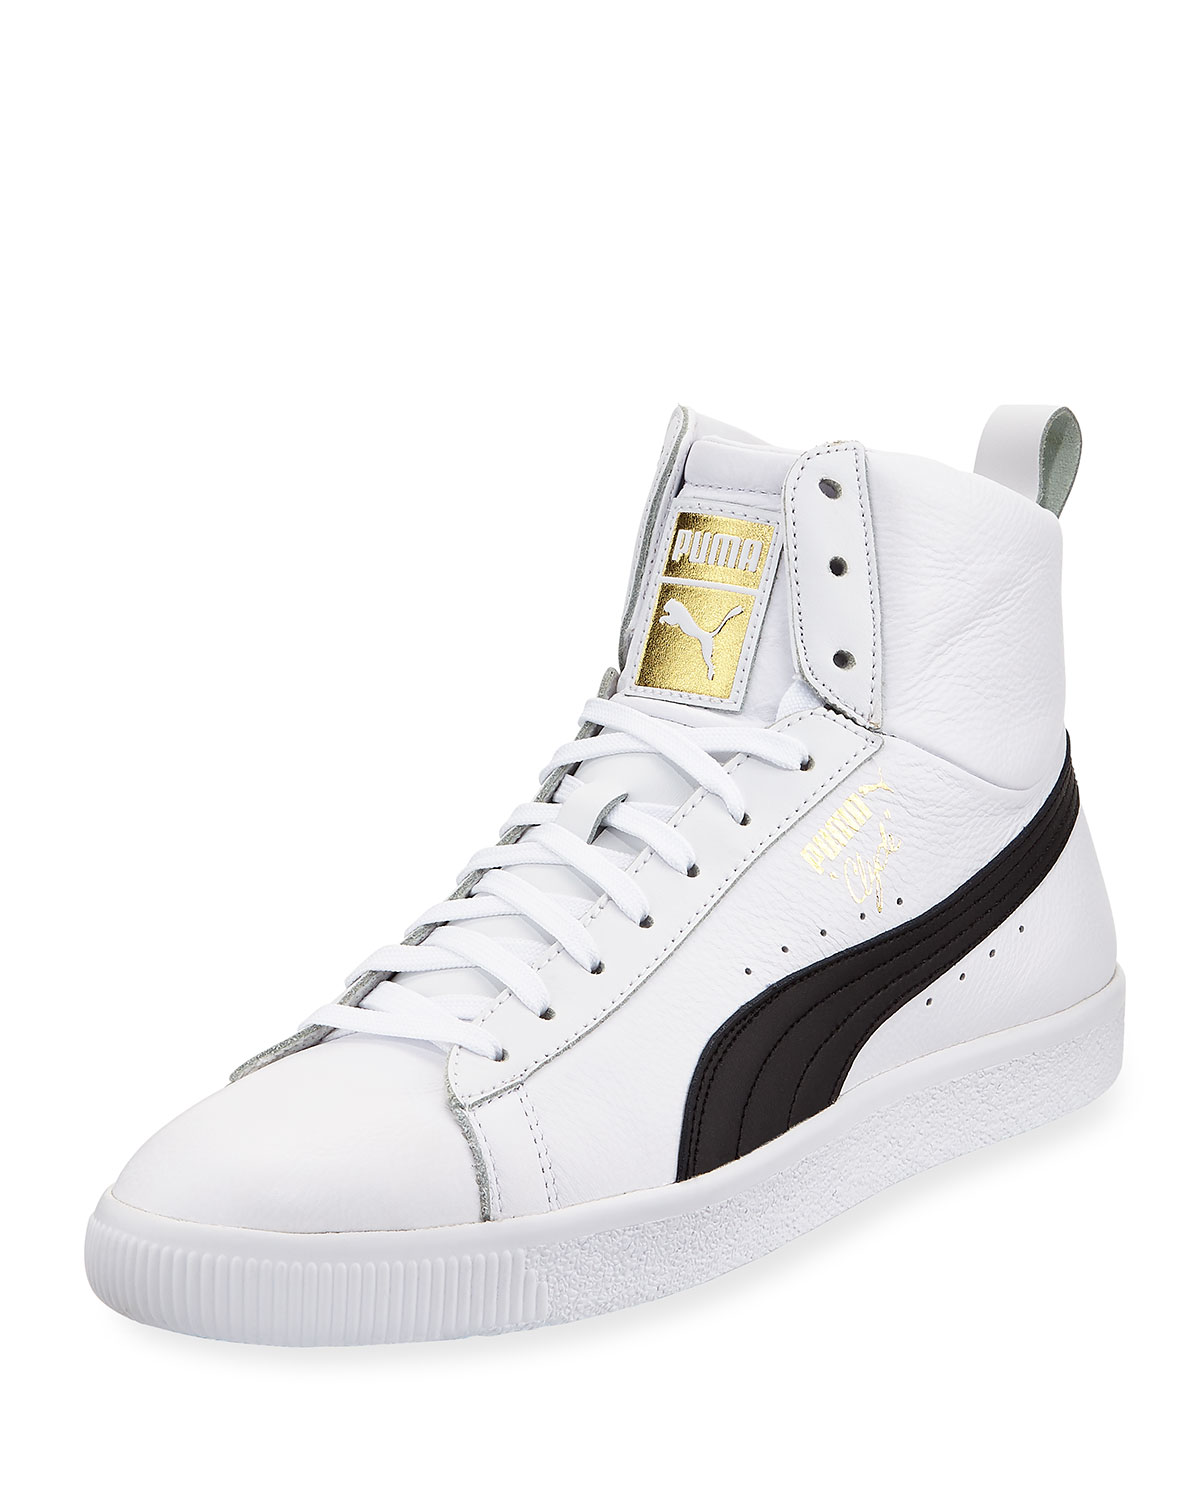 separation shoes 3b535 1026a Men's Clyde Mid Core High-Top Leather Sneakers, White/Black